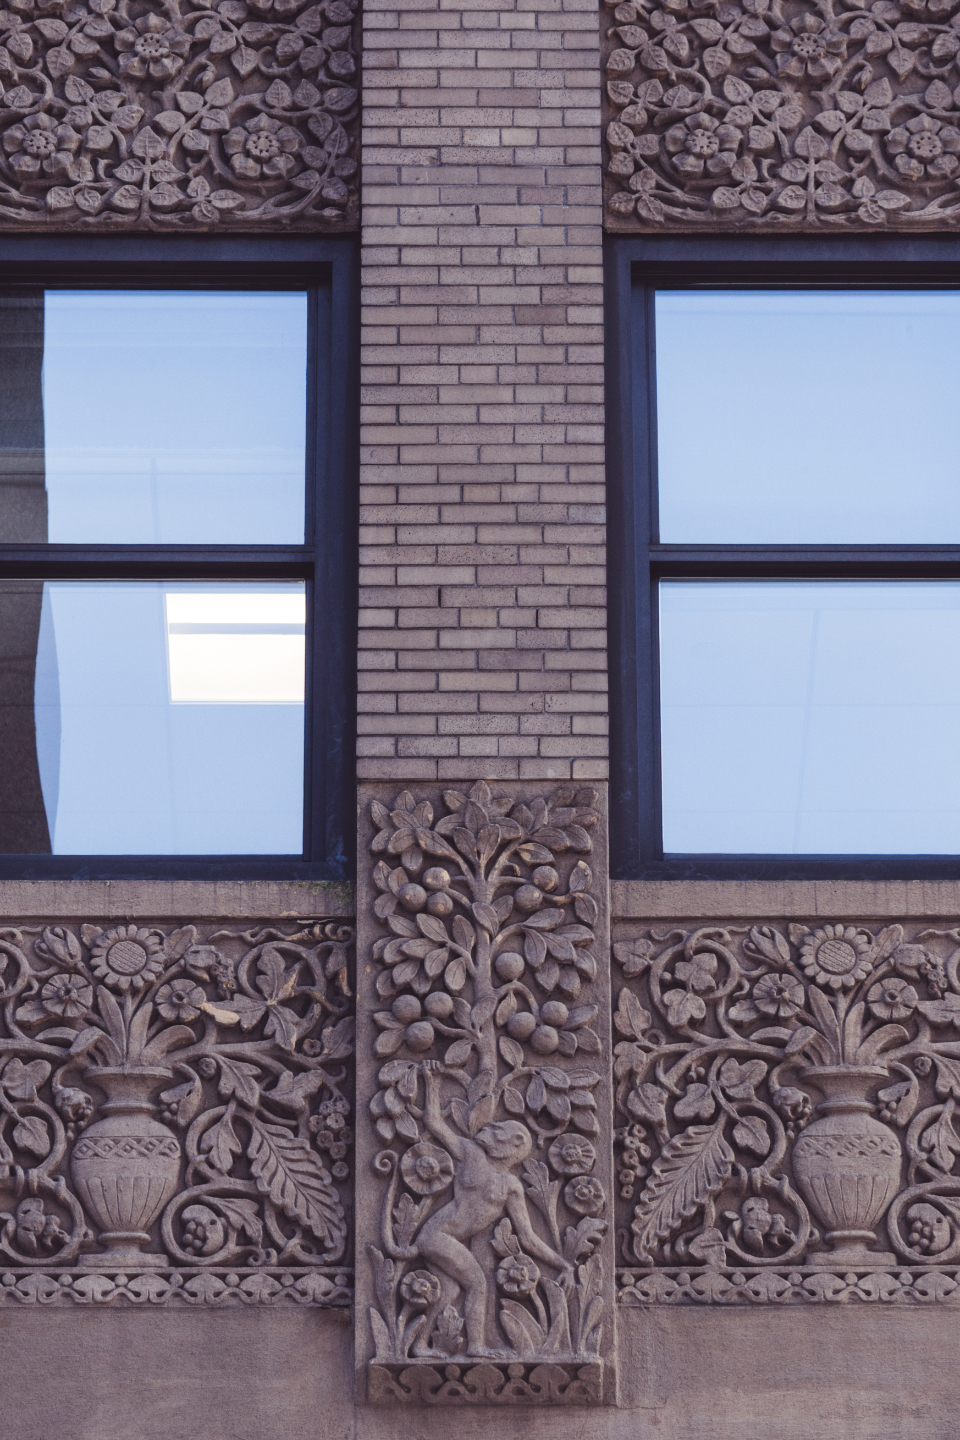 building ornate detail windows brick sculpture city exterior glass design art architecture symmetry stone urban